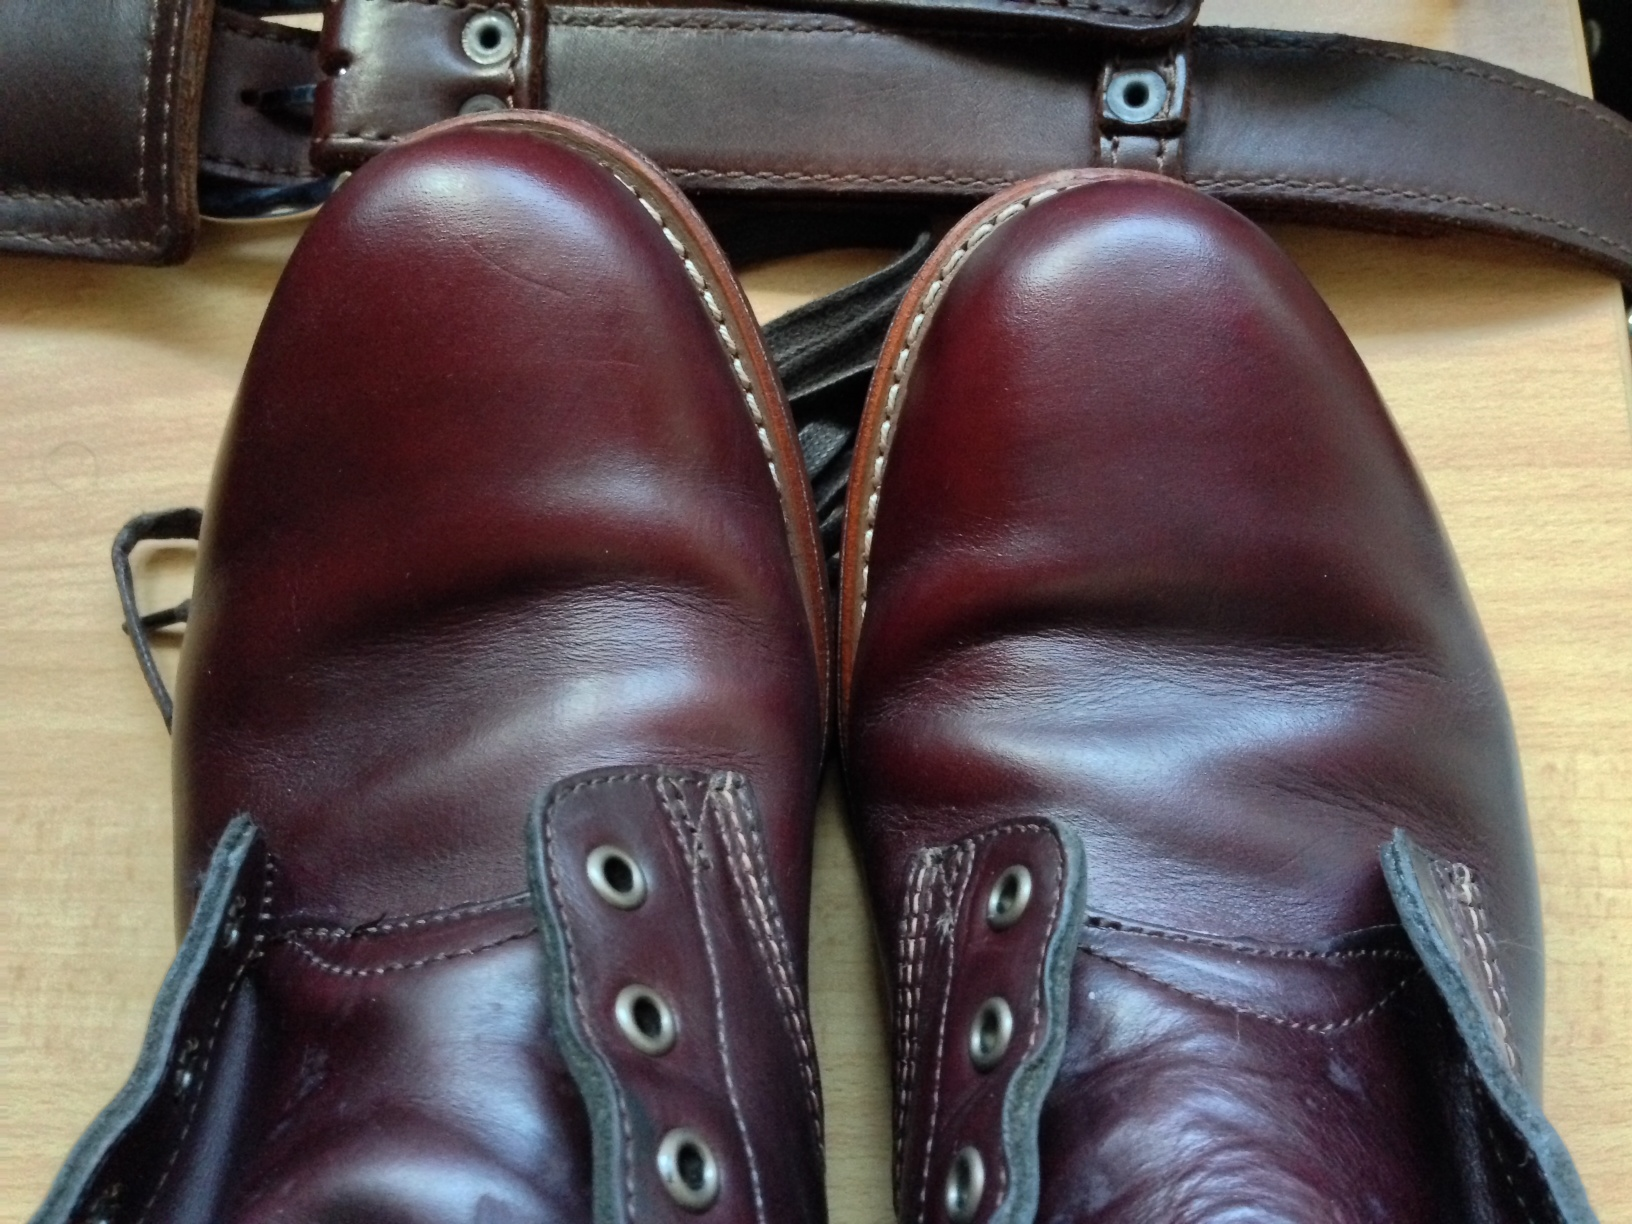 Easy & Effective Way To Remove Mold From Leather Boots